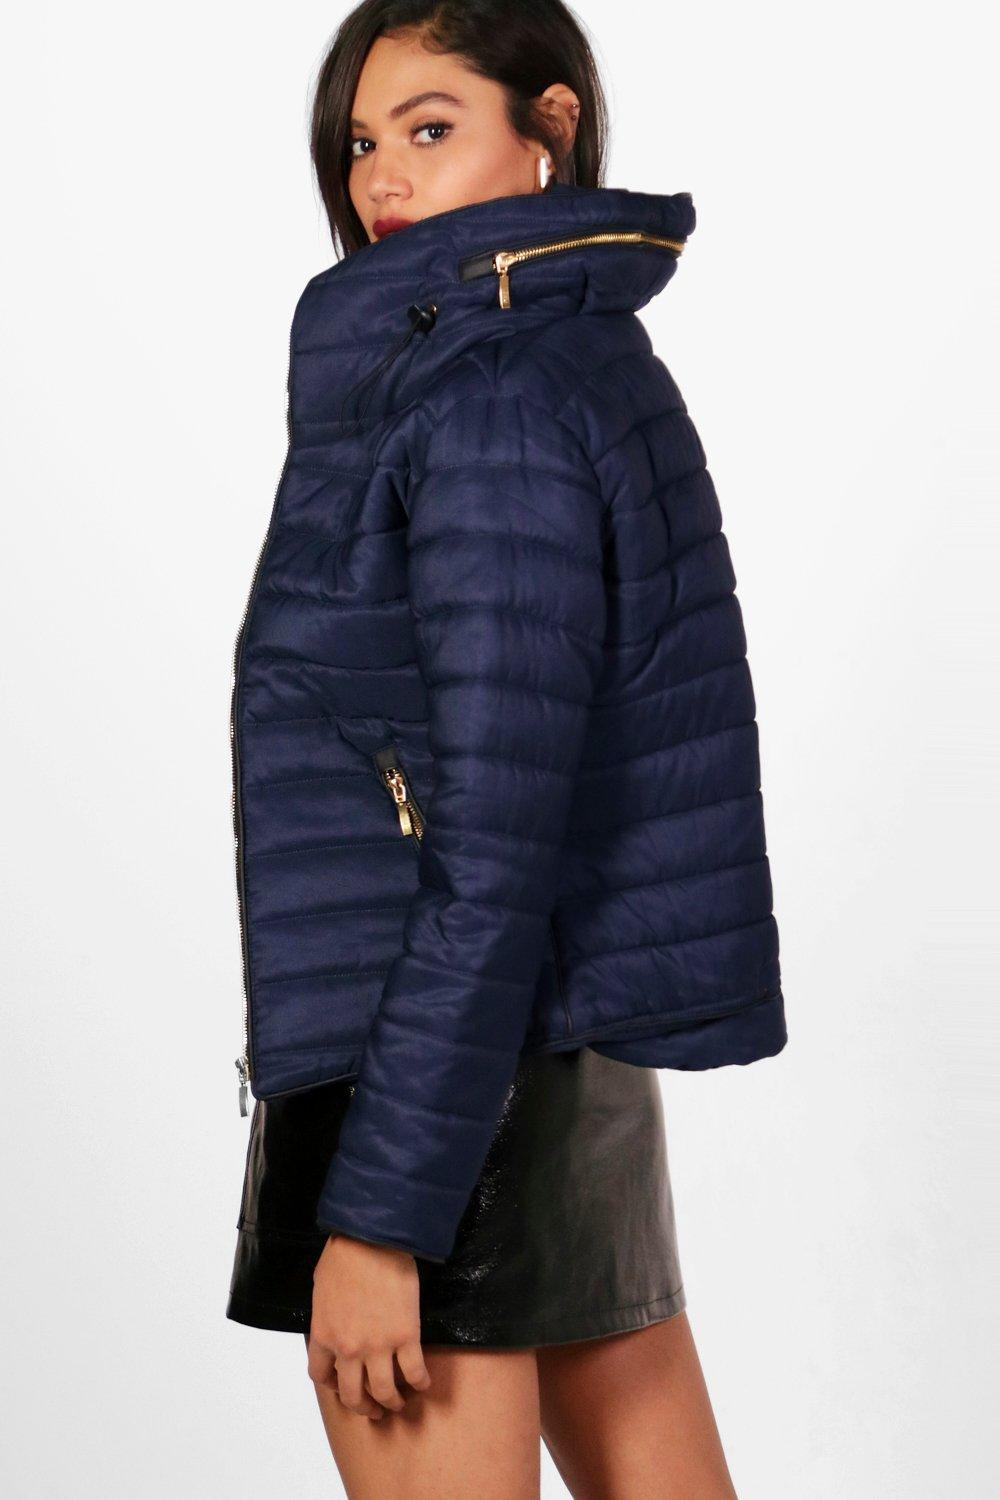 Quilted Jacket navy Sara Sara Jacket navy Quilted Sara wfr5xSfq